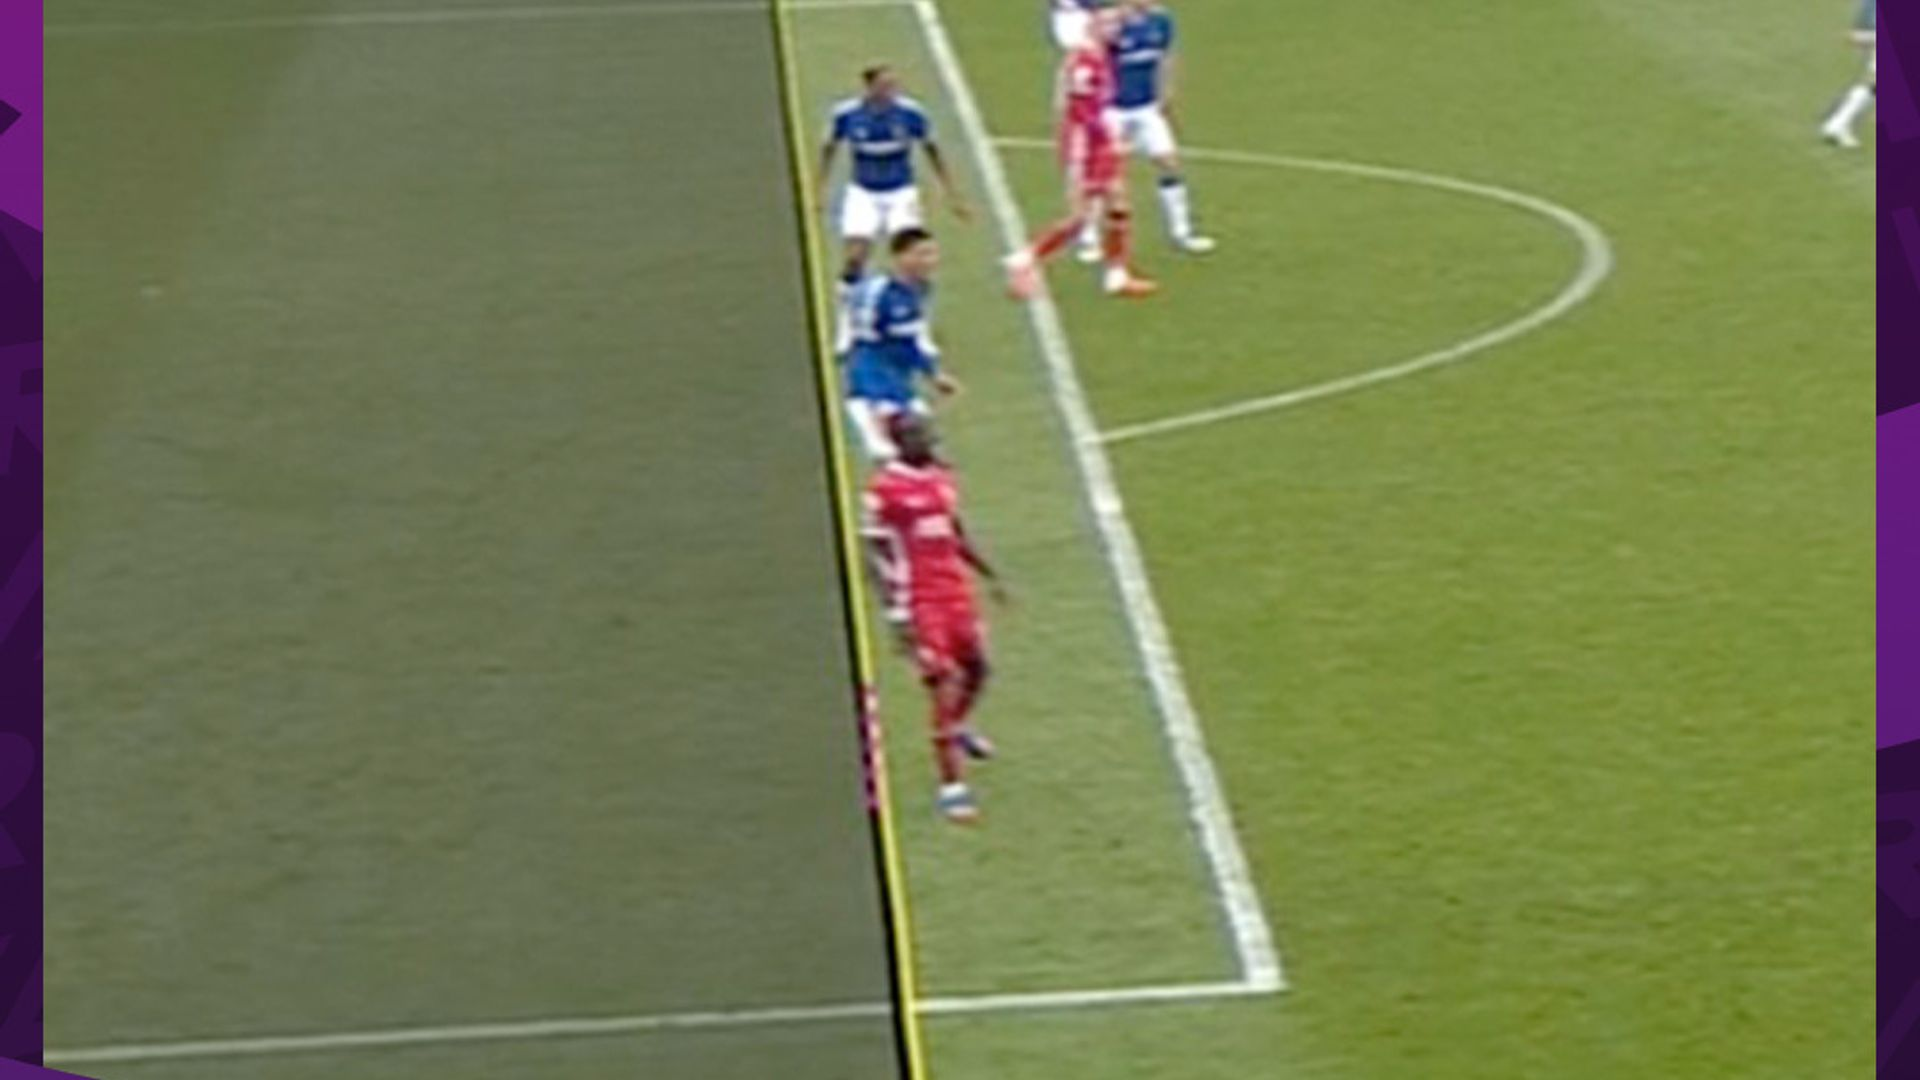 FIFA requests better visuals for VAR offside decisions